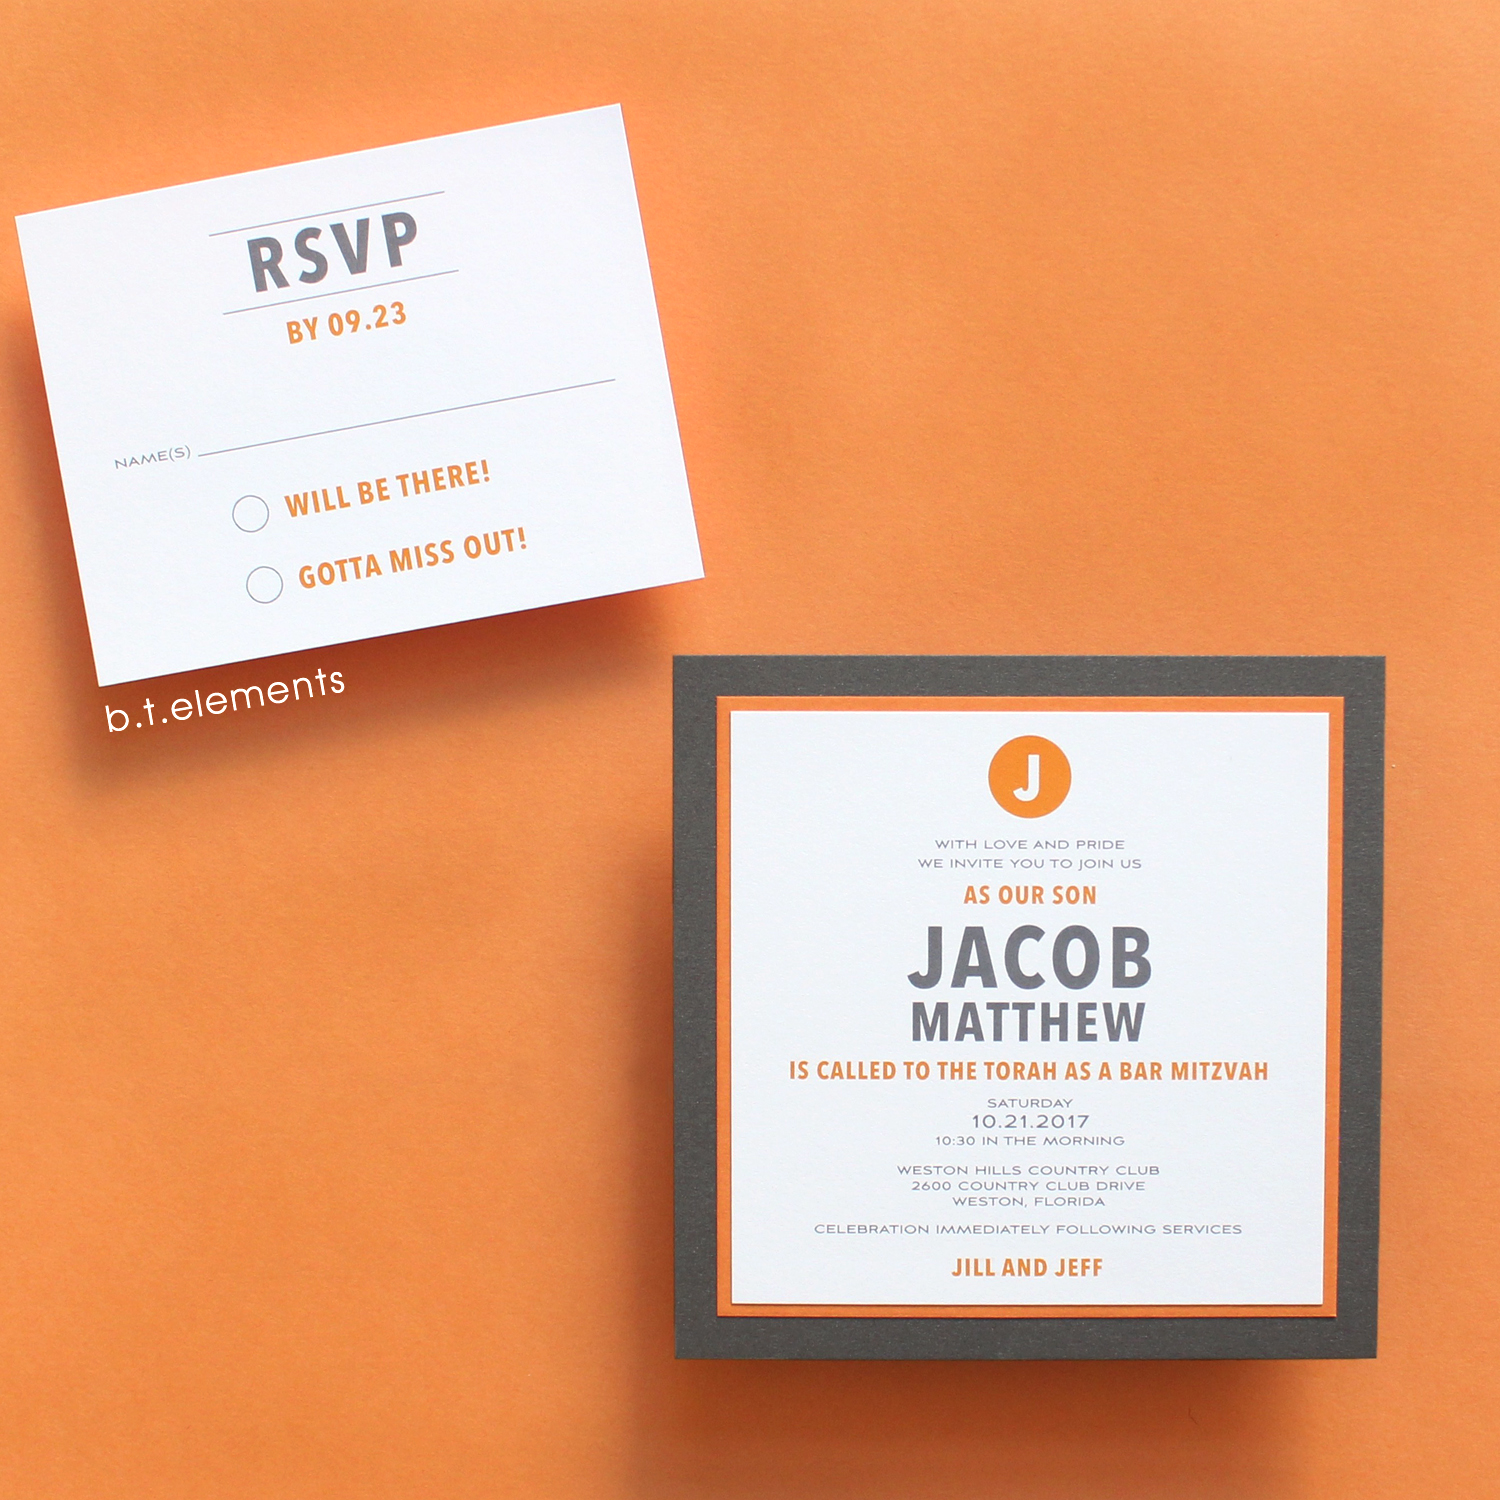 Jacob's Bar Mitzvah Invitation, 2017   Store: Styled Events in Weston, FL